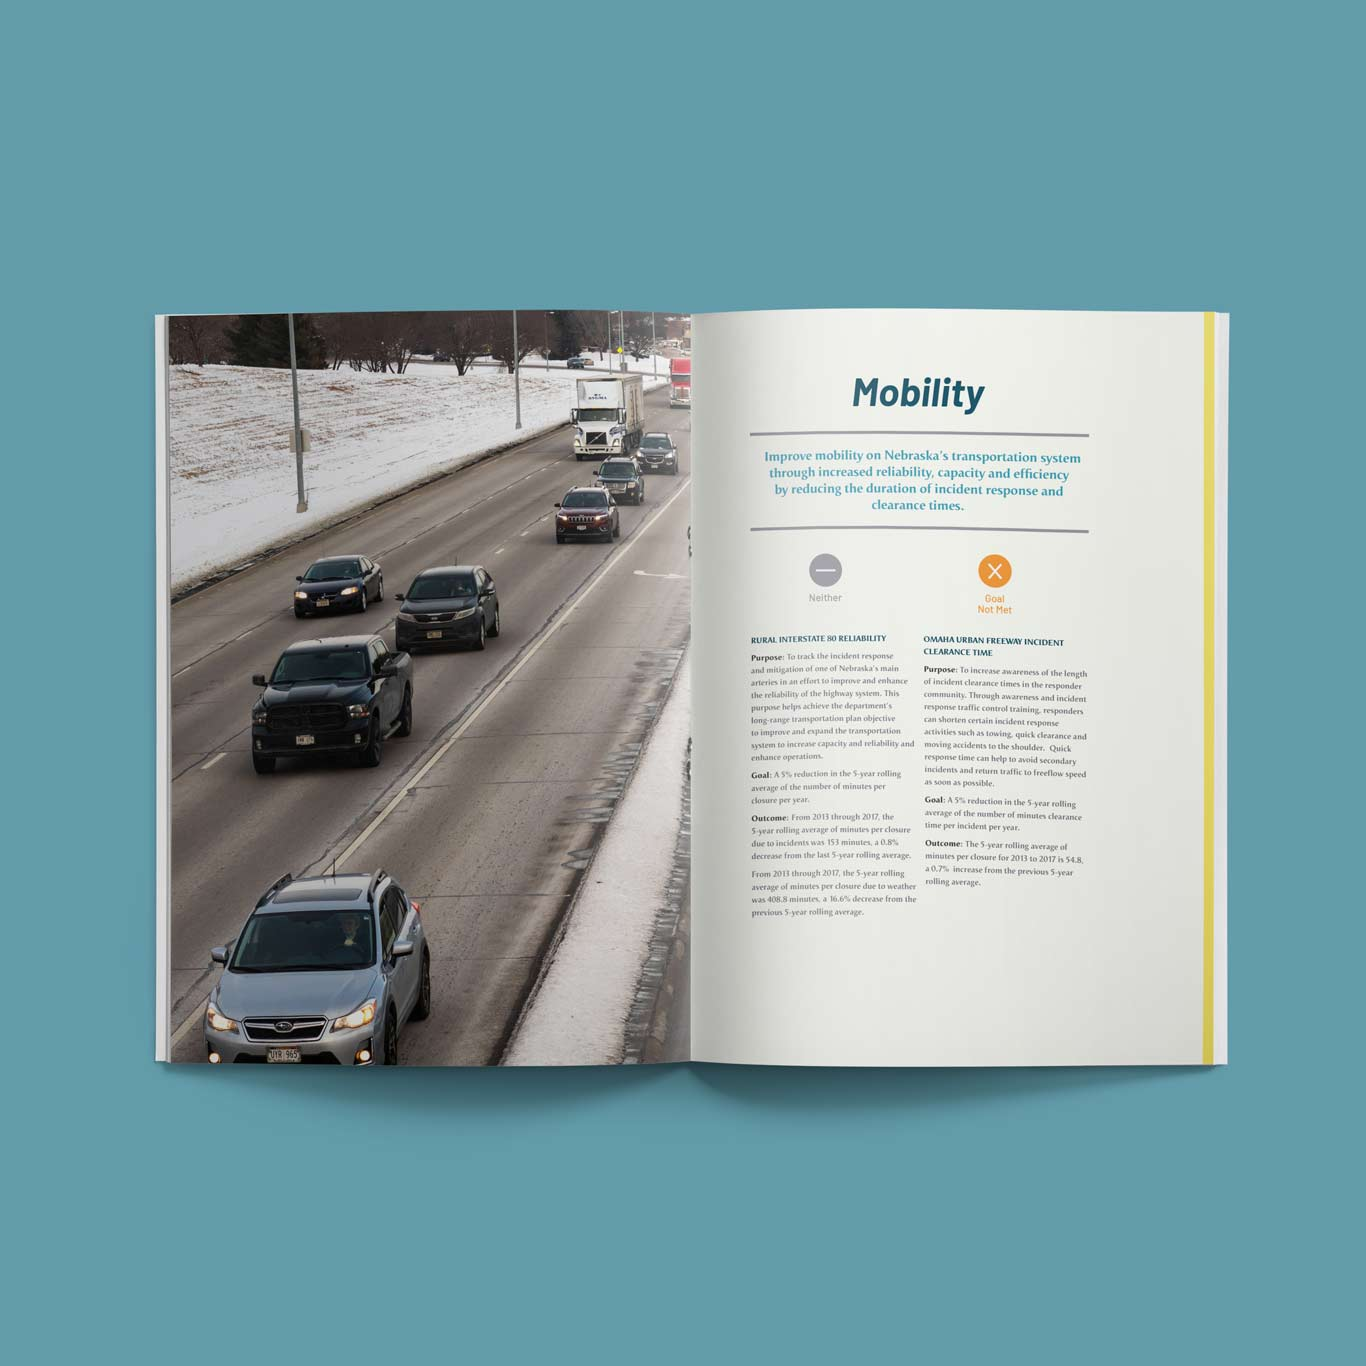 Fifth spread. Utilizes an image of Nebraska Highway 2 for the mobility/smoothness of roads information.